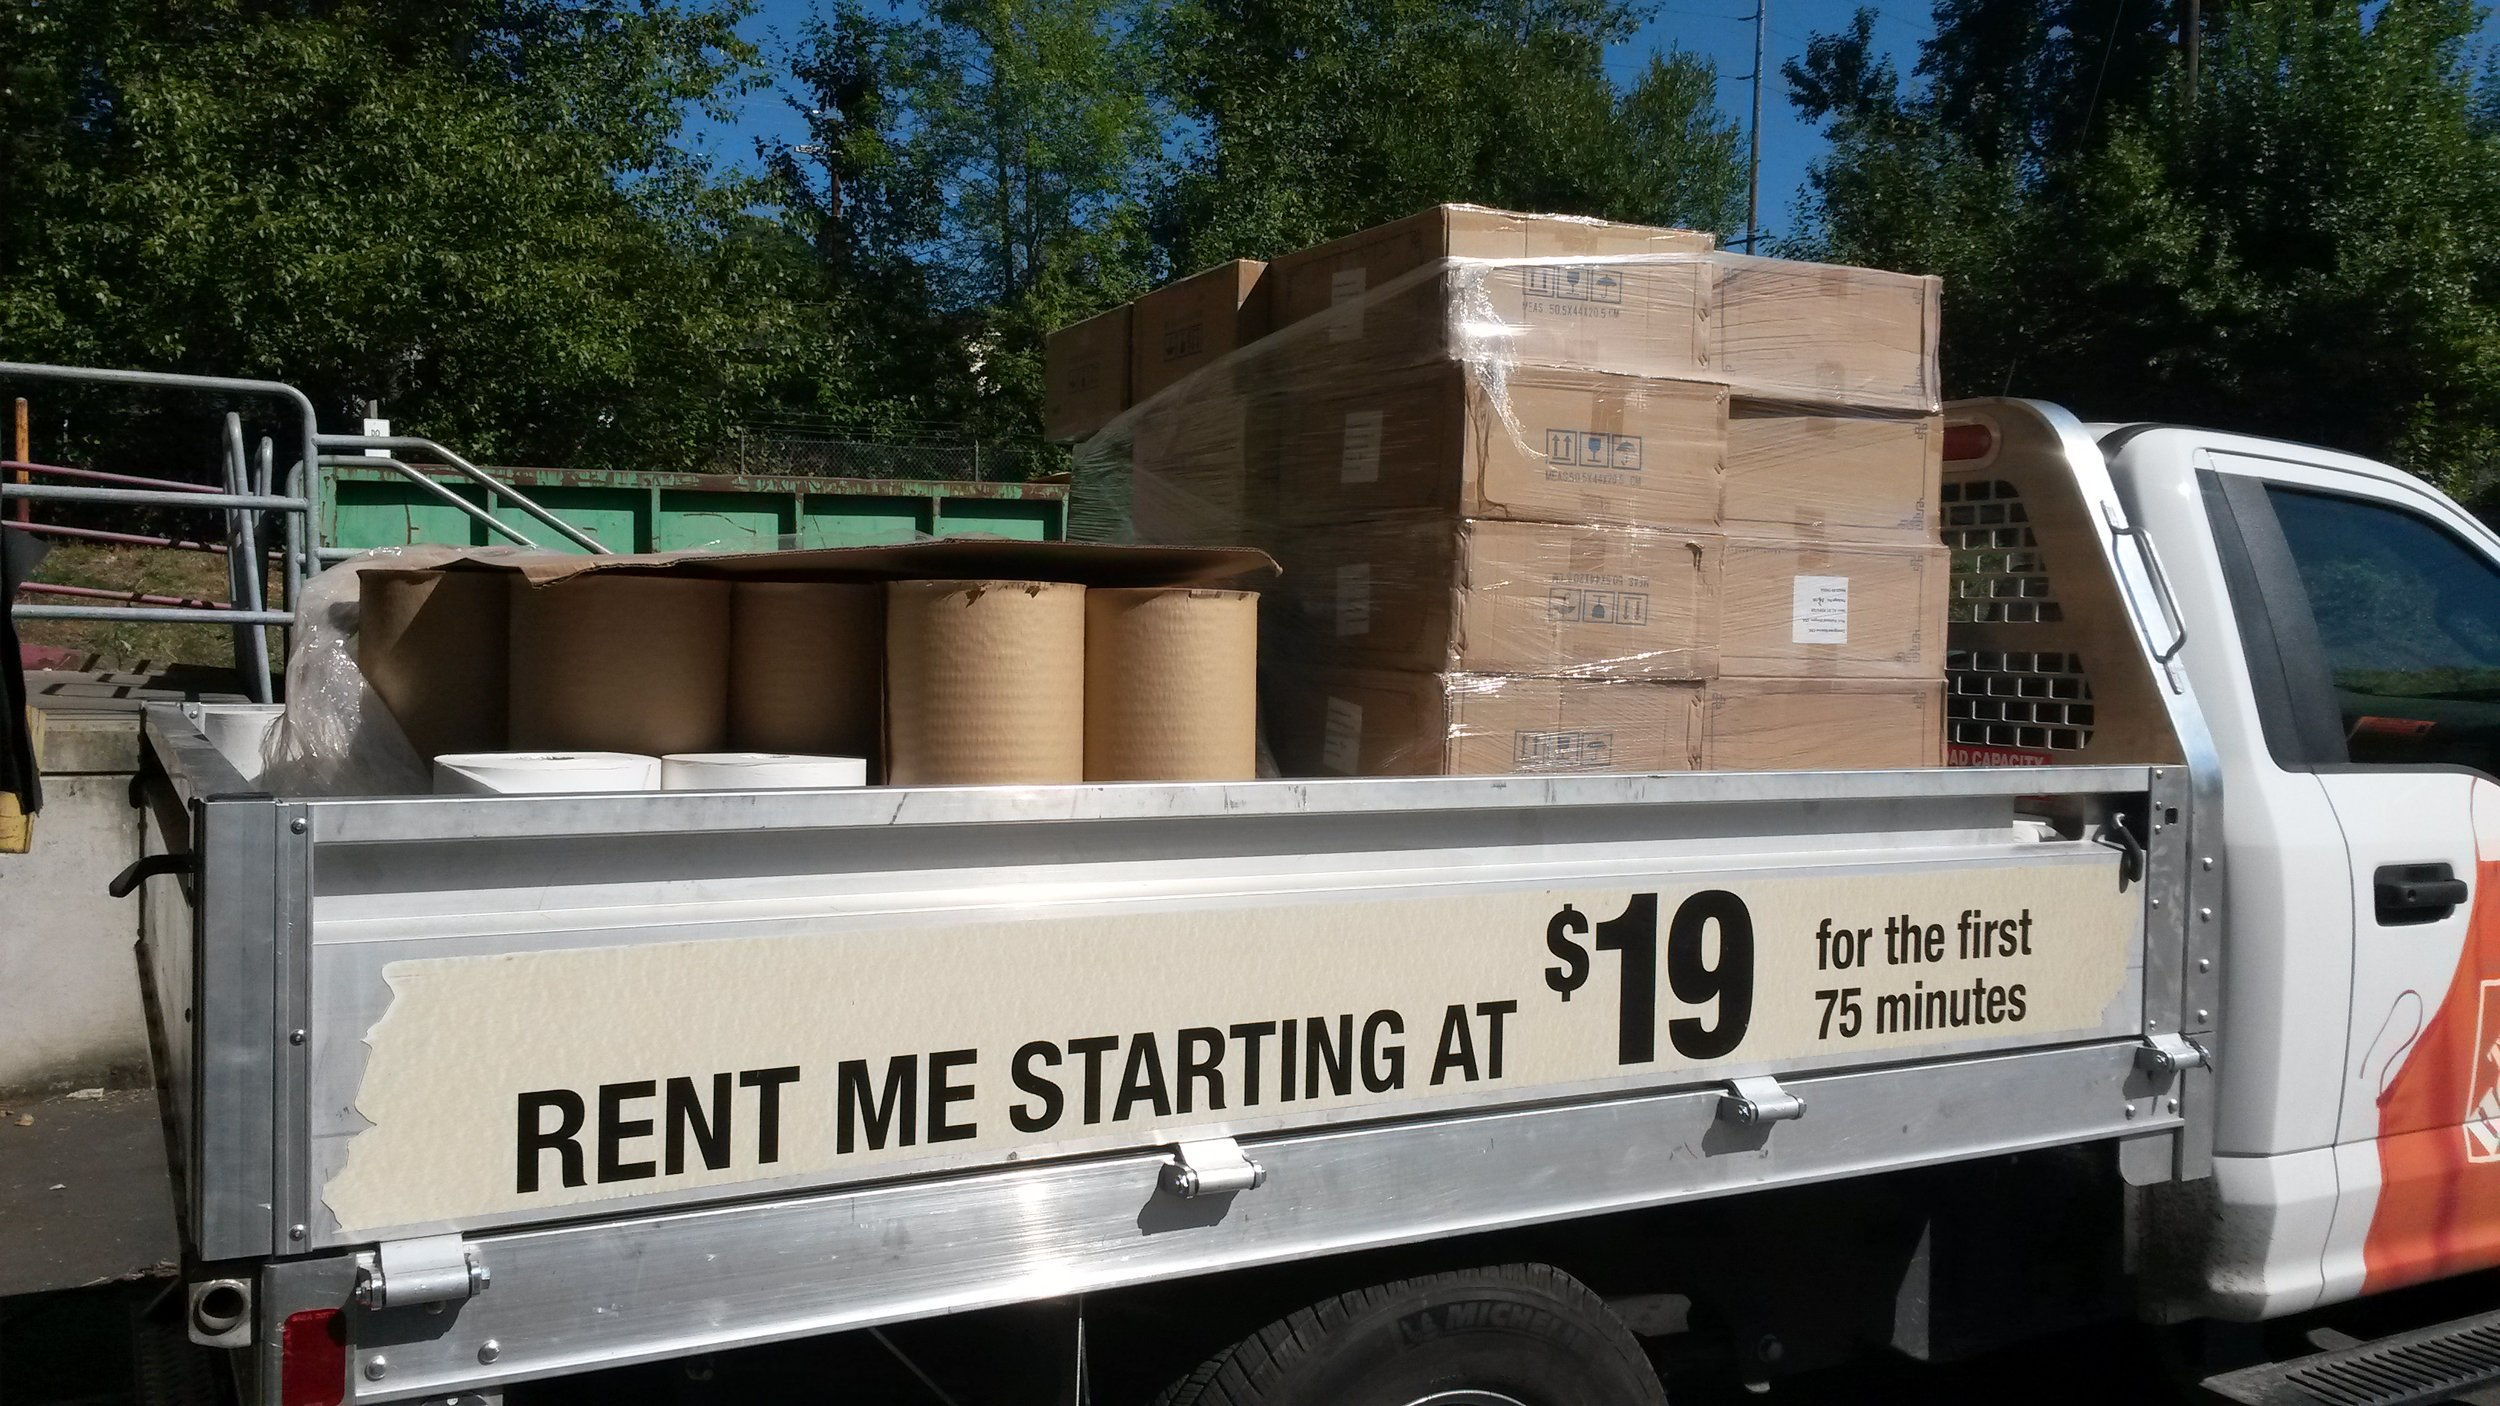 One load of stuff in the Home Depot truck.